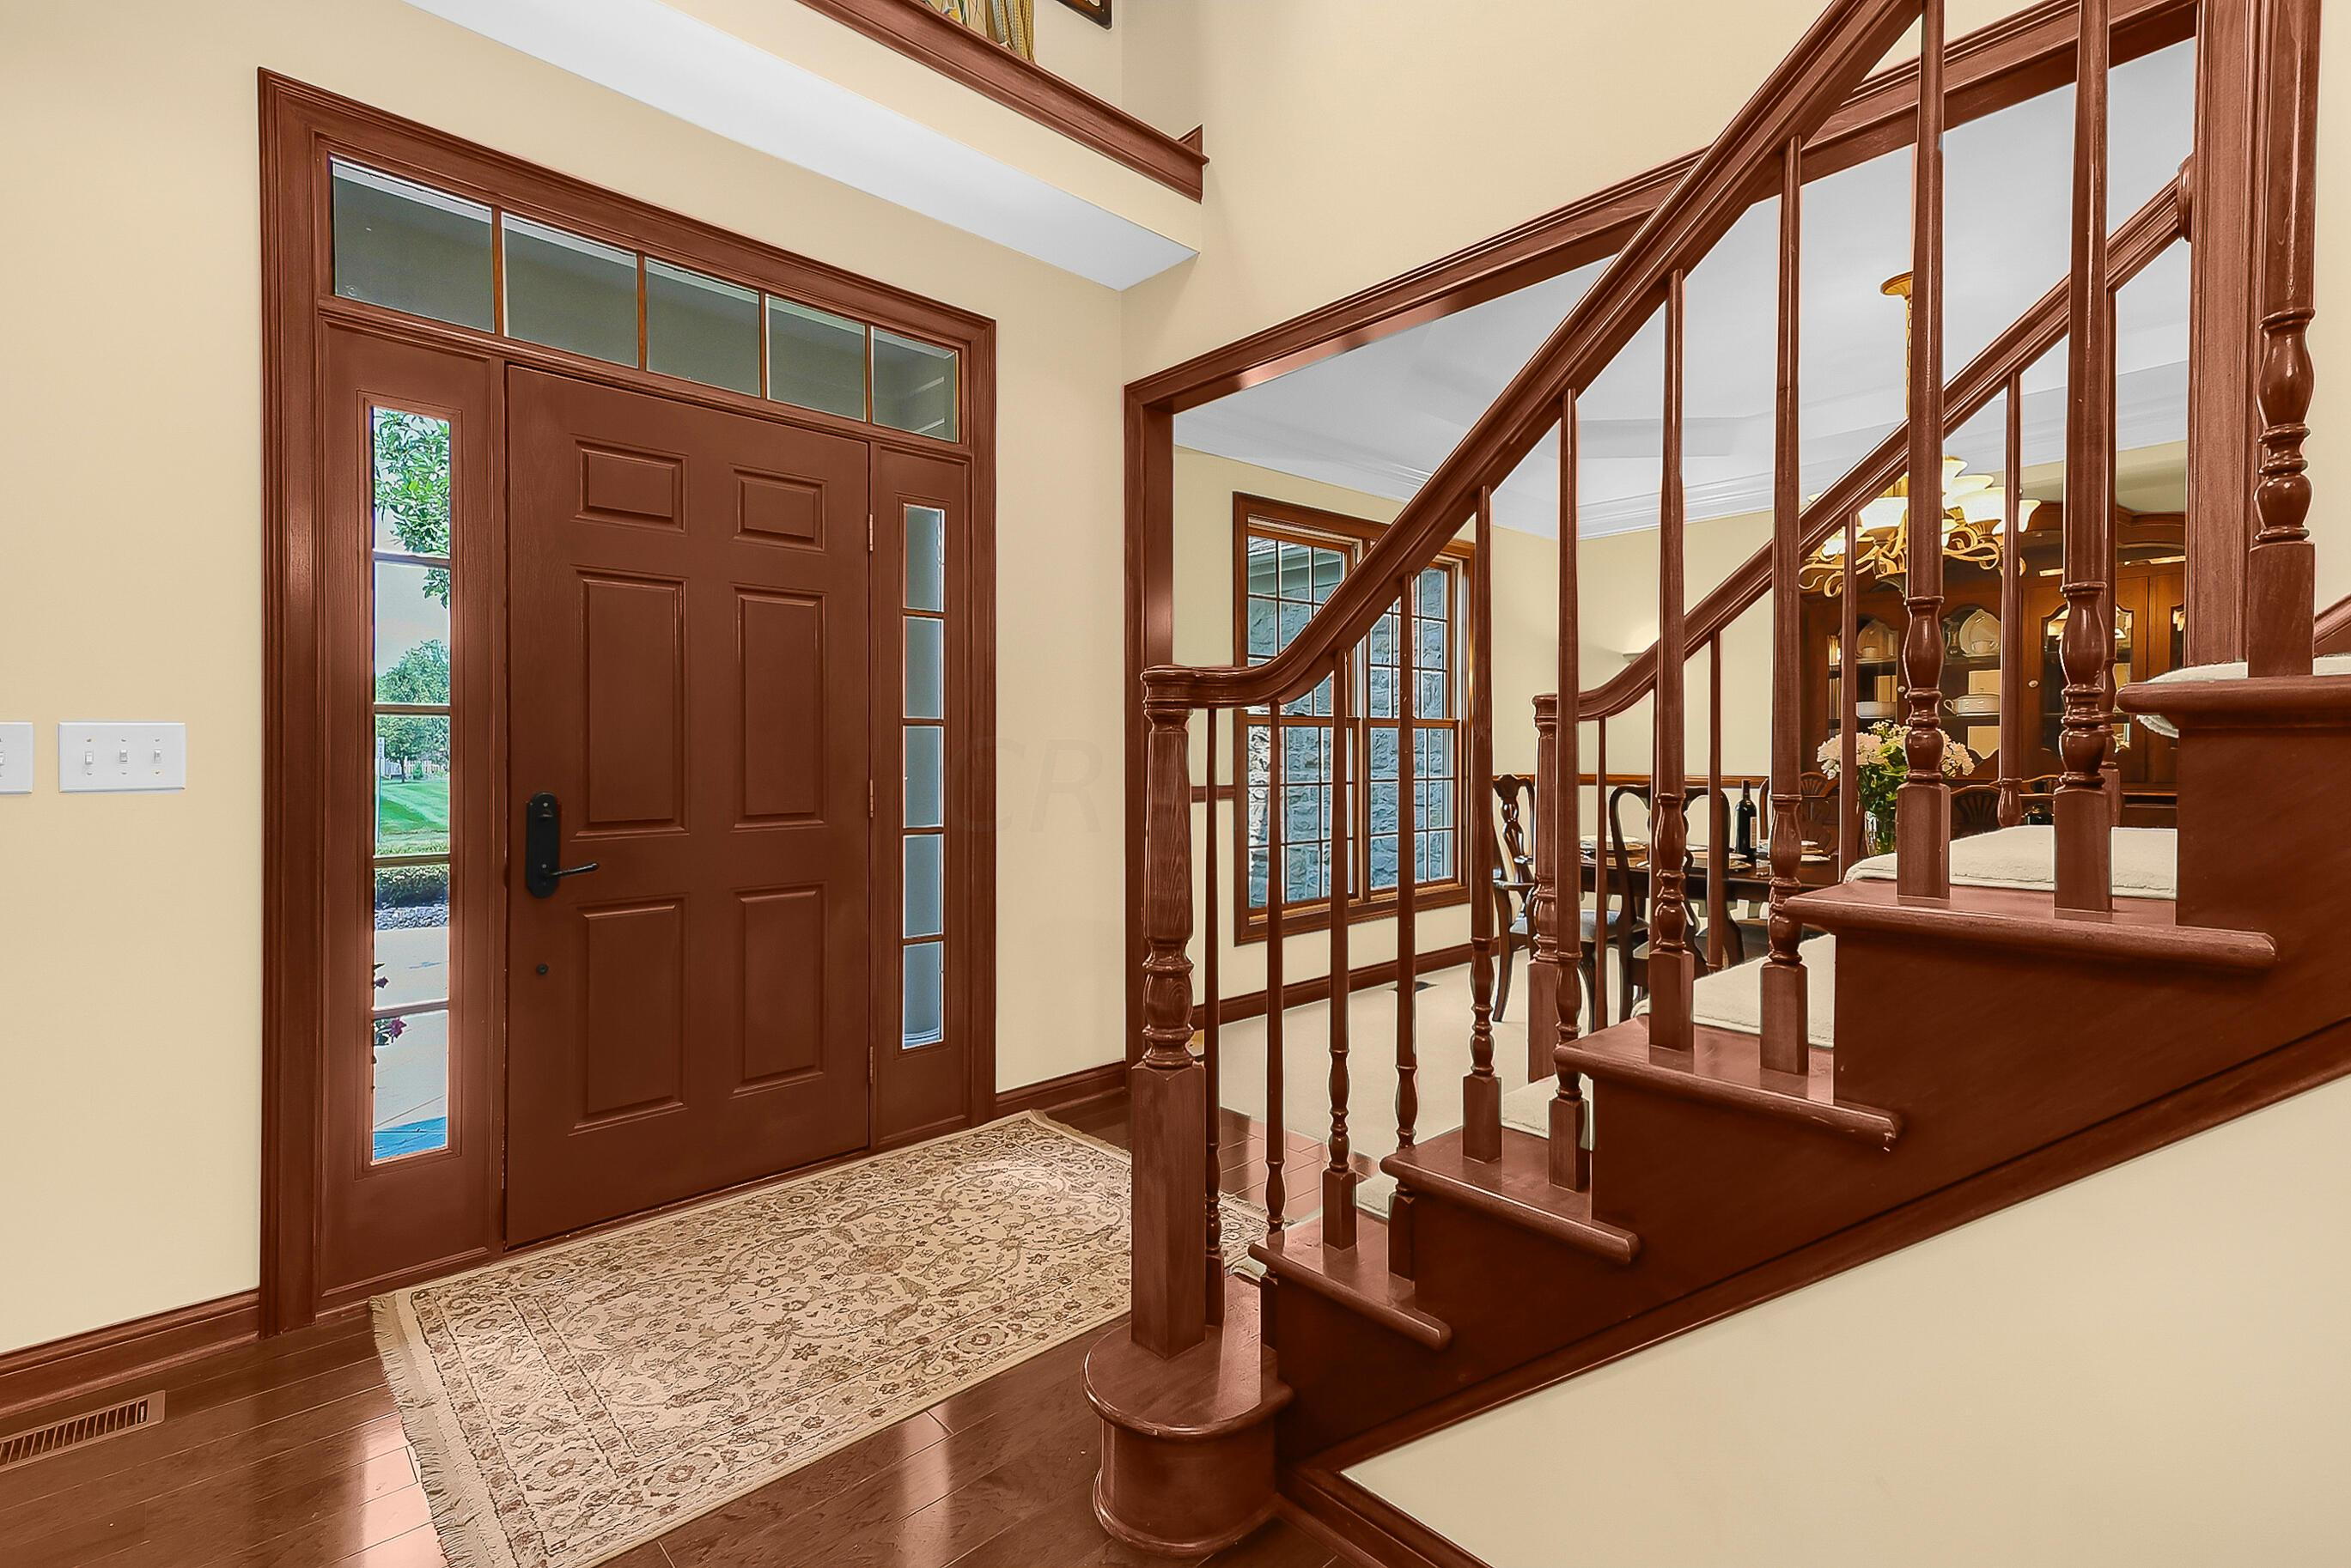 2Story FOYER is Warm and Inviting